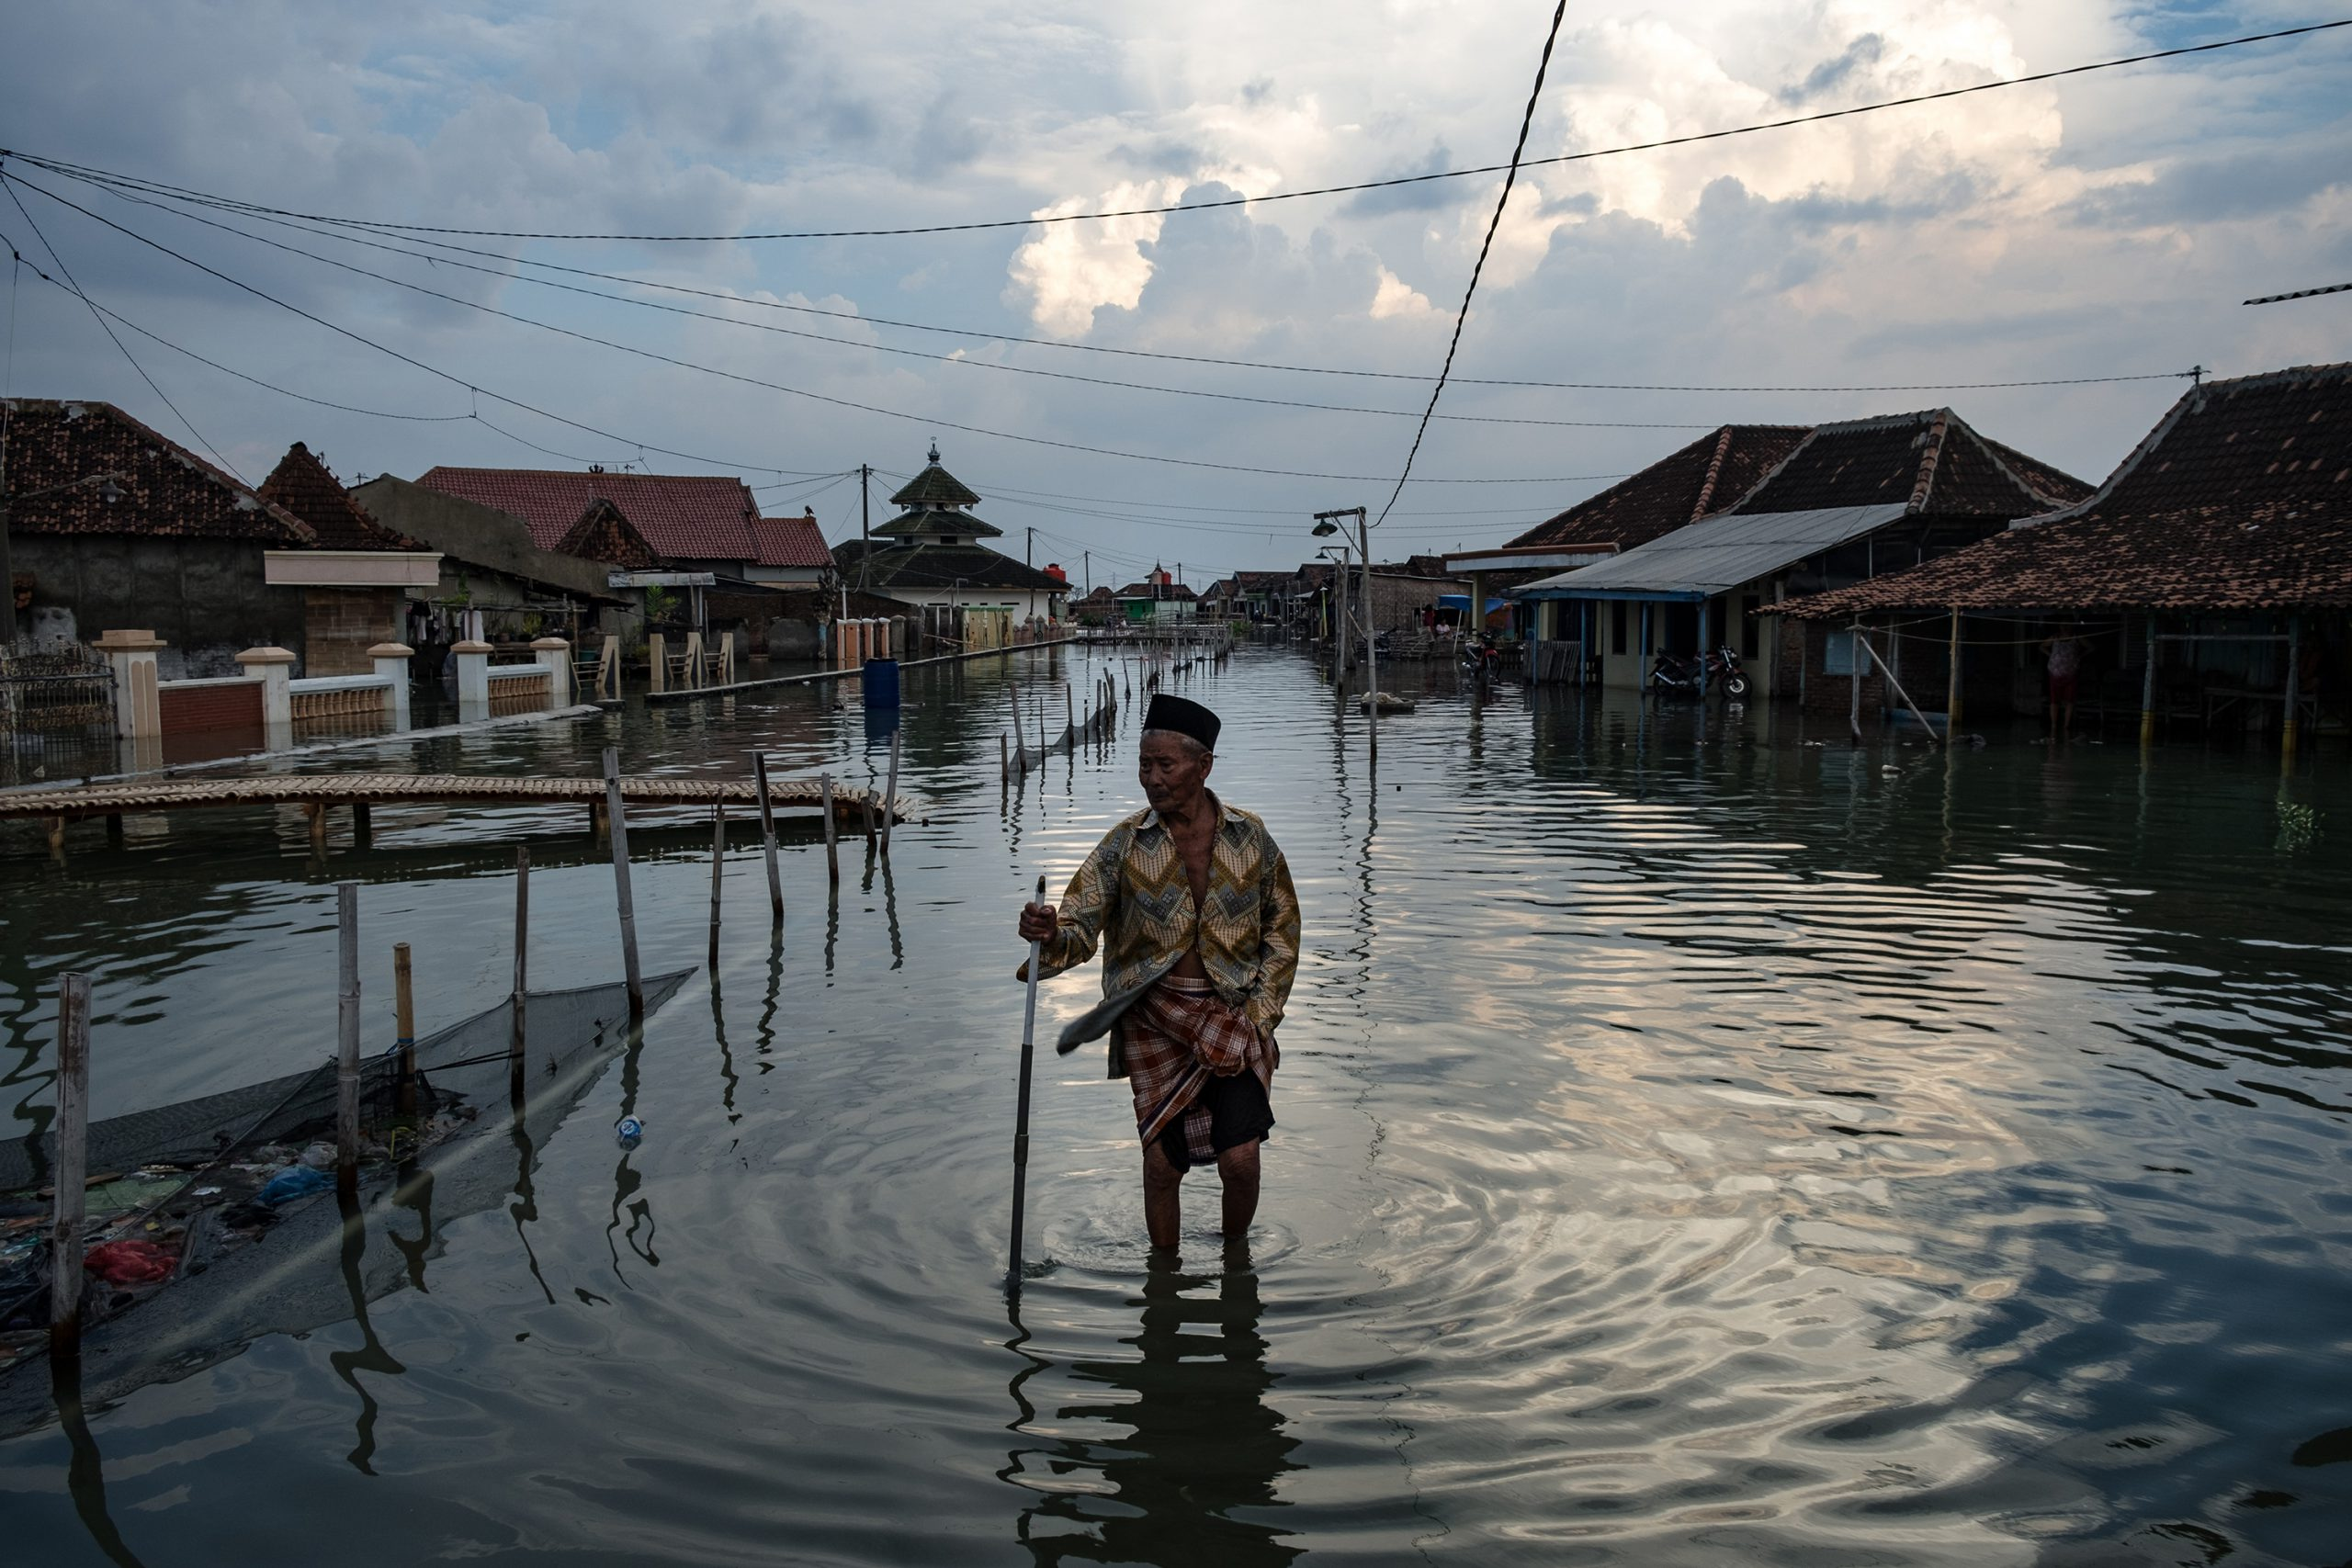 Getty Images and Climate Visuals award $20,000 to photojournalists